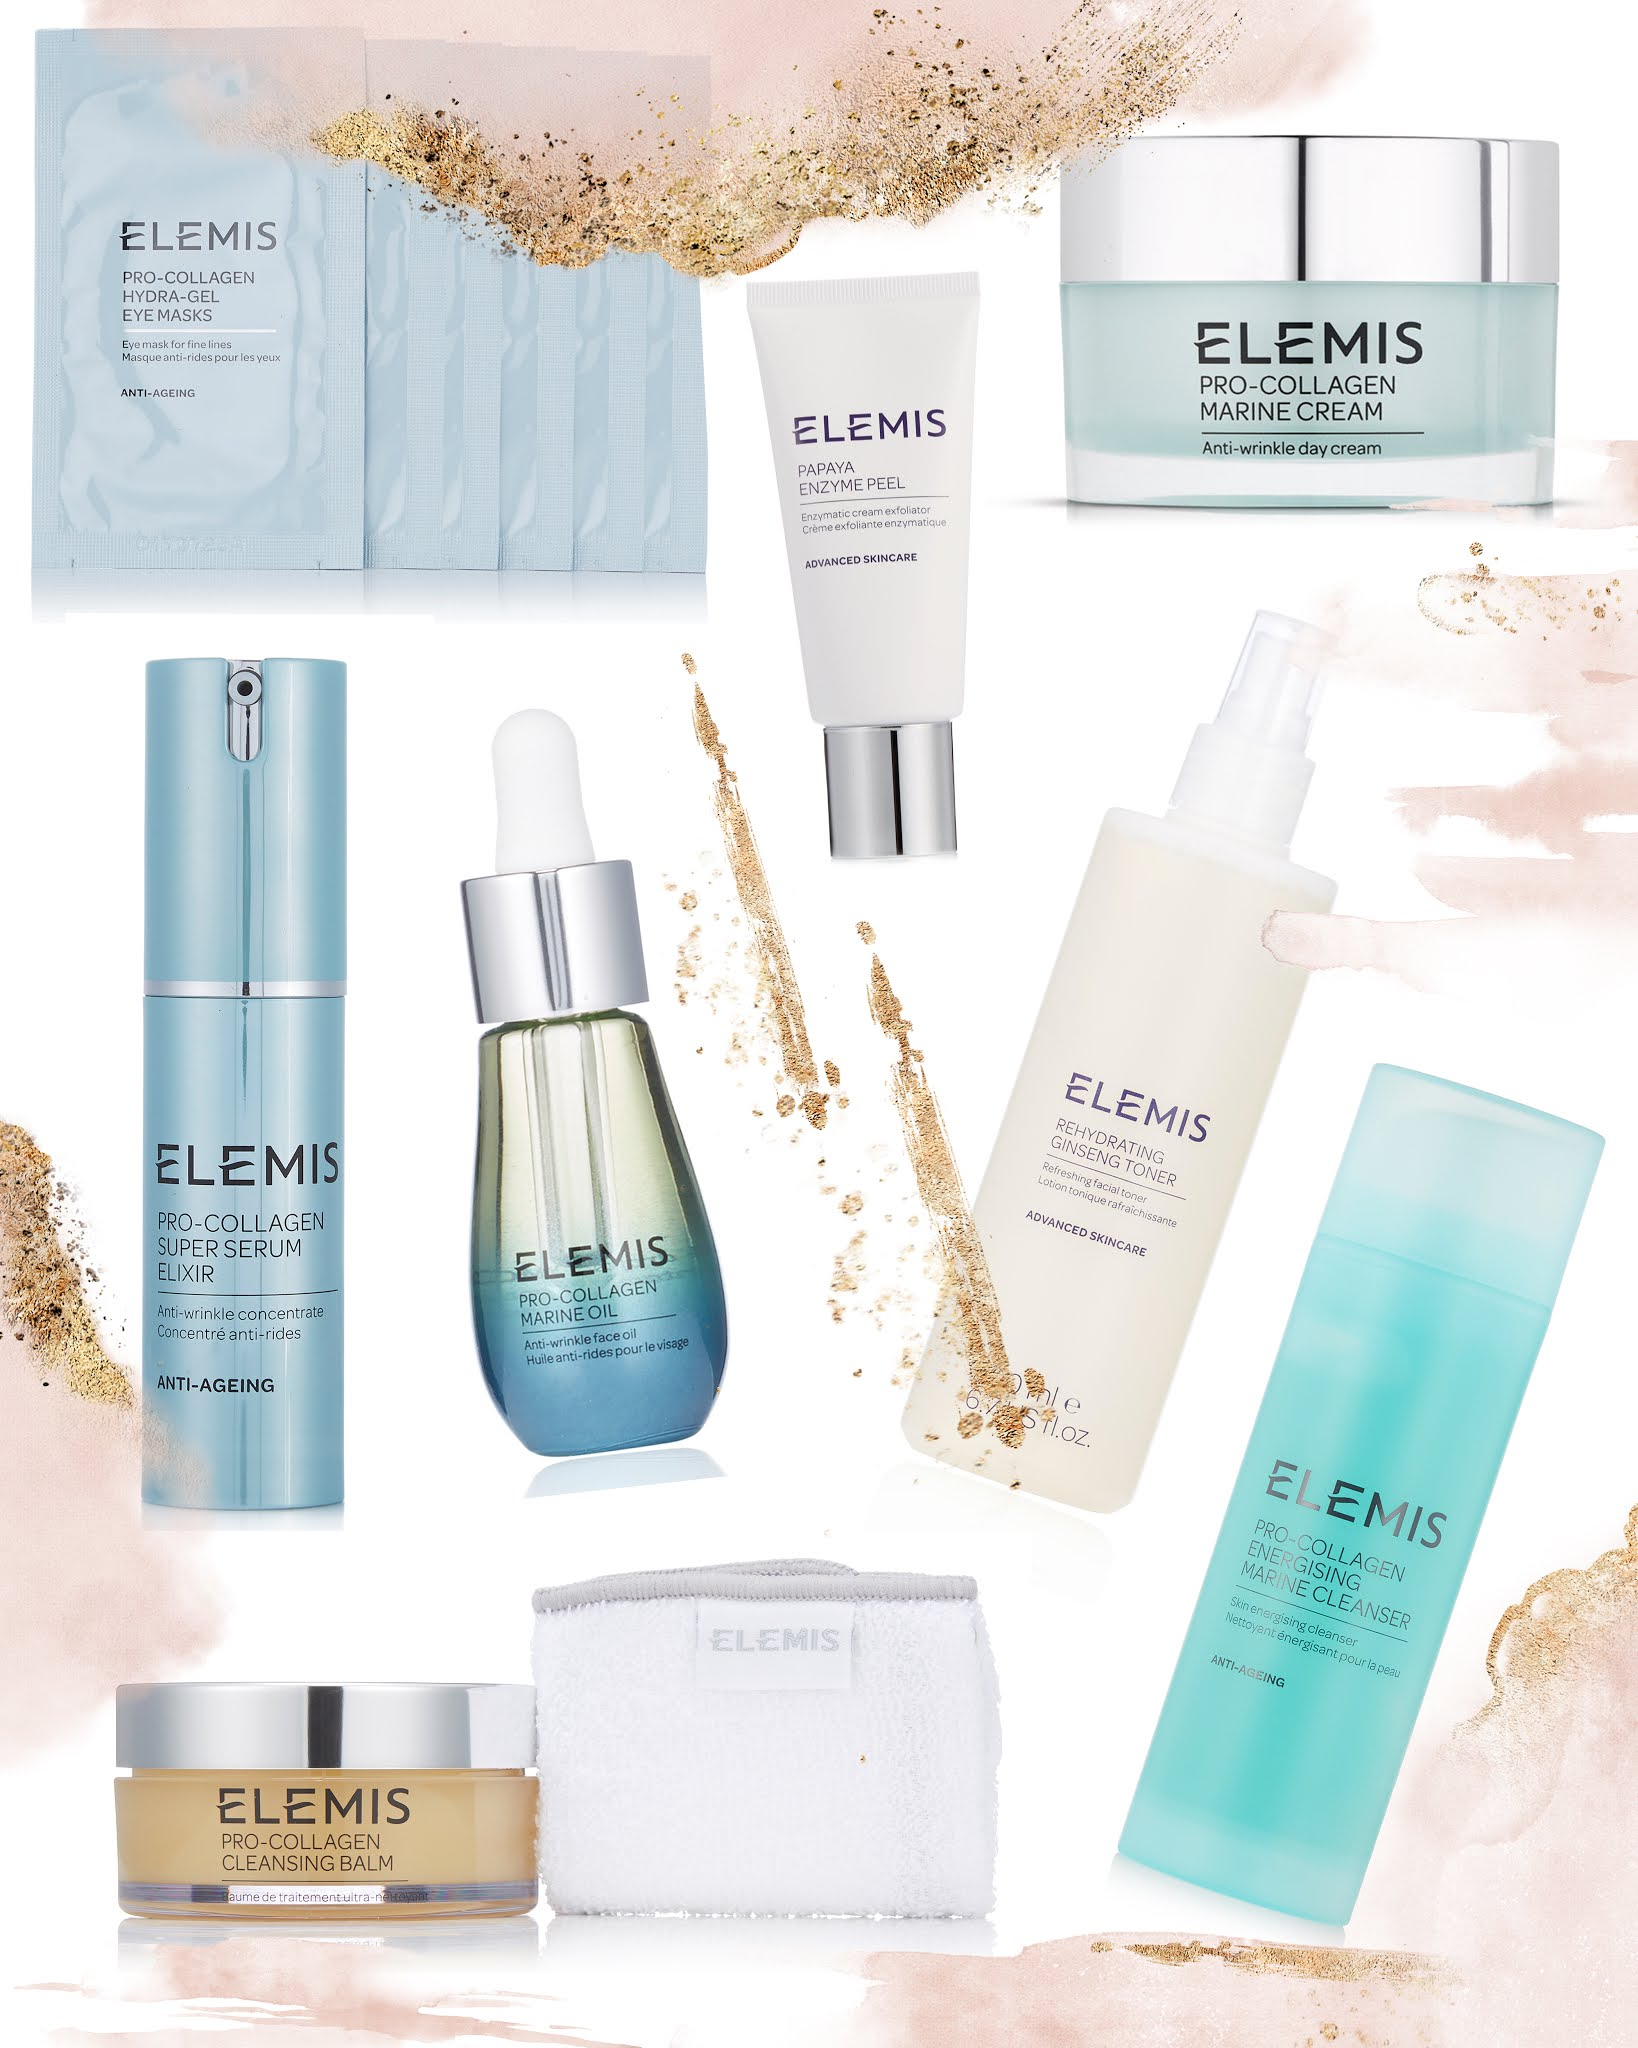 Elemis Blog Giveaway November 2020 UK